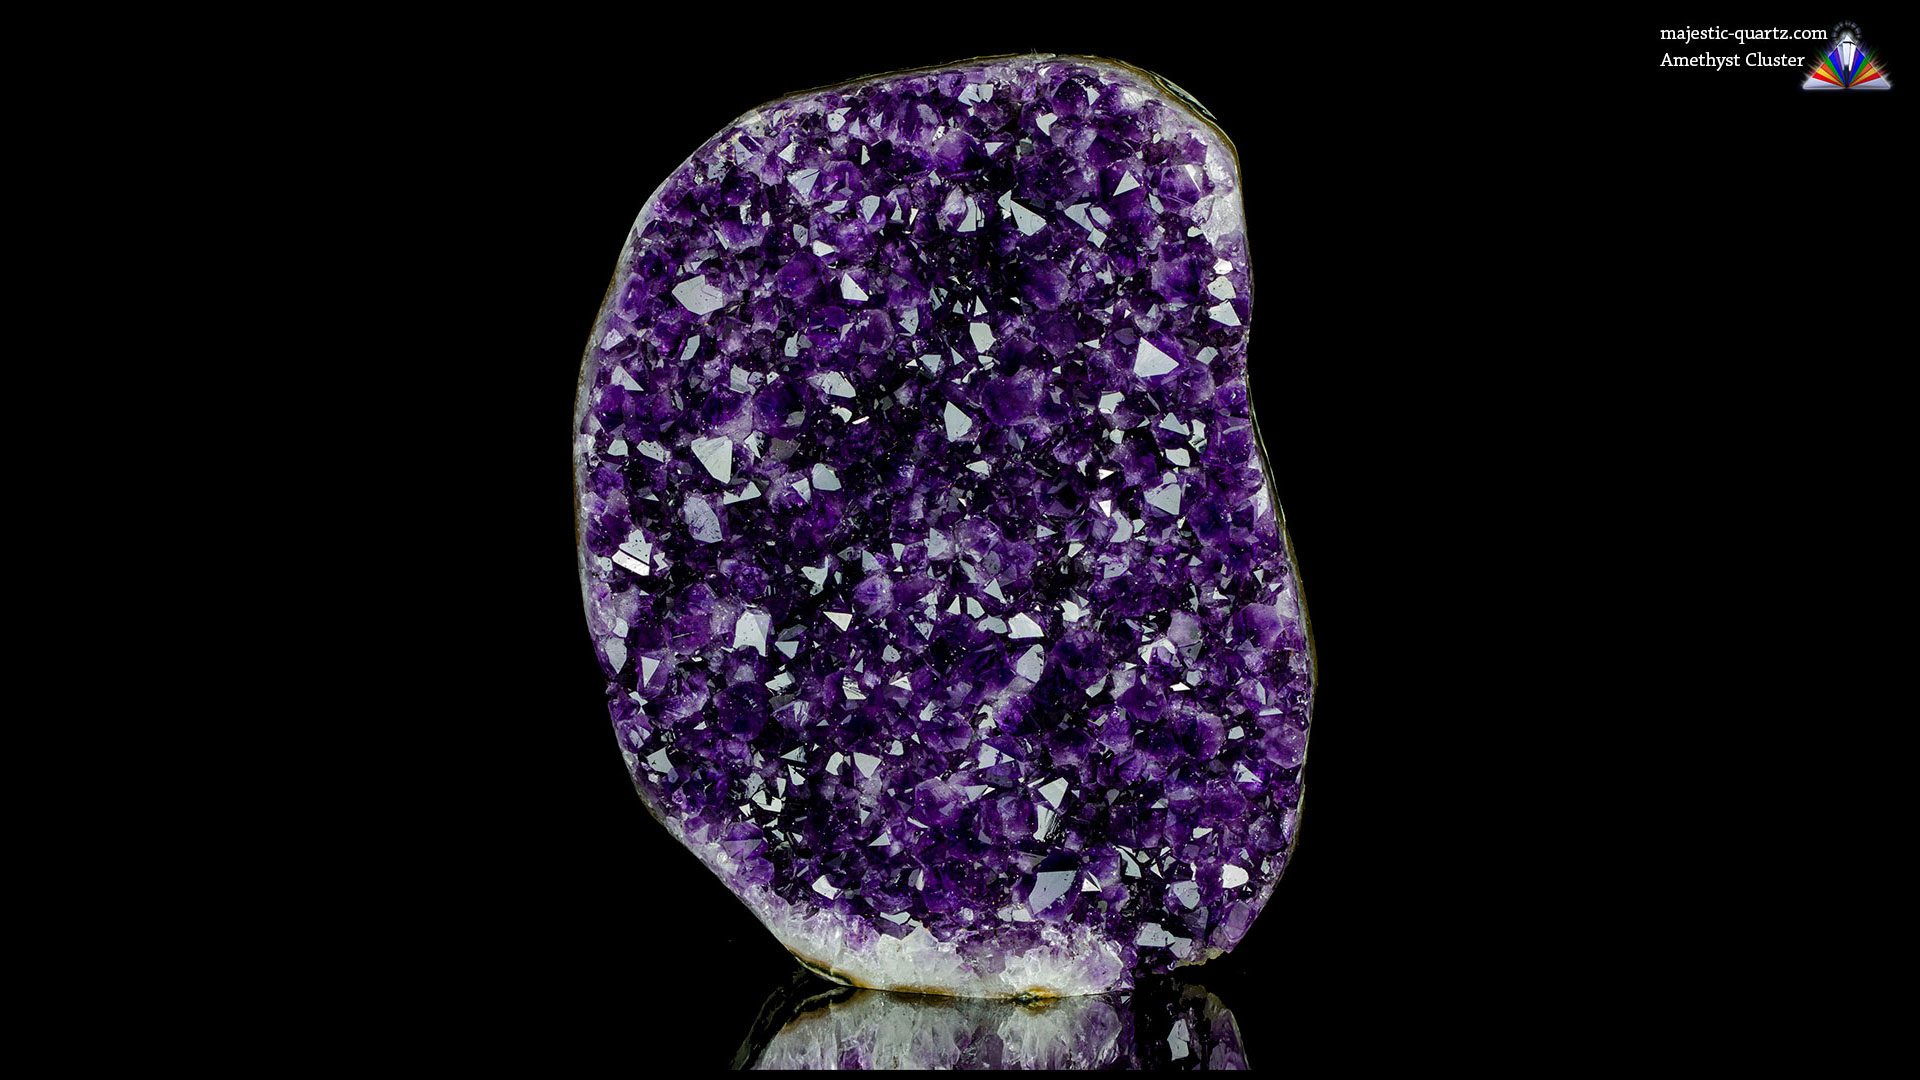 Uruguayan Amethyst Cluster Specimen - Photograph by Anthony Bradford